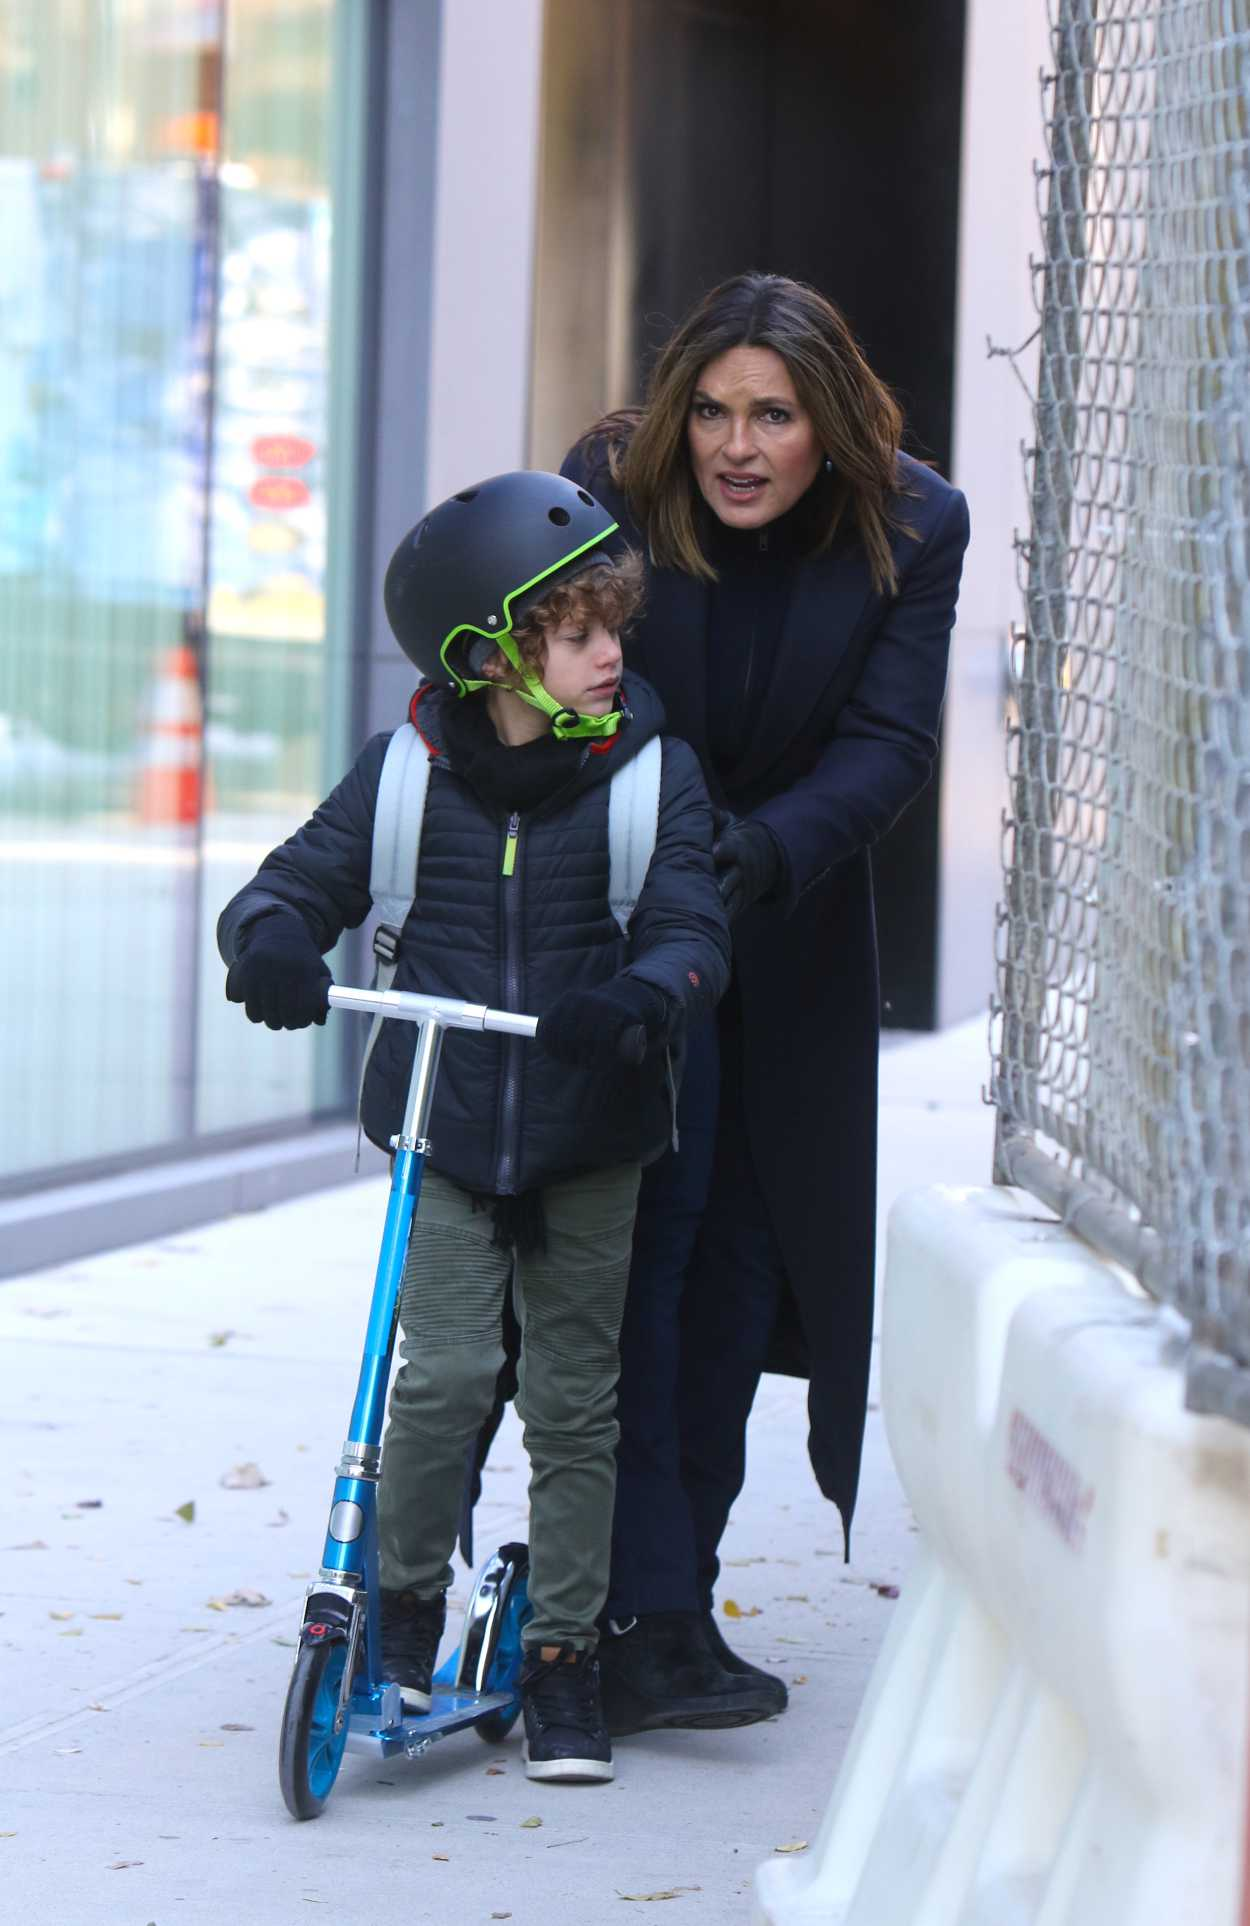 Mariska Hargitay in a Black Coat on the Set of Law and Order: Special Victims Unit in Chelsea, Manhattan 11/19/2019